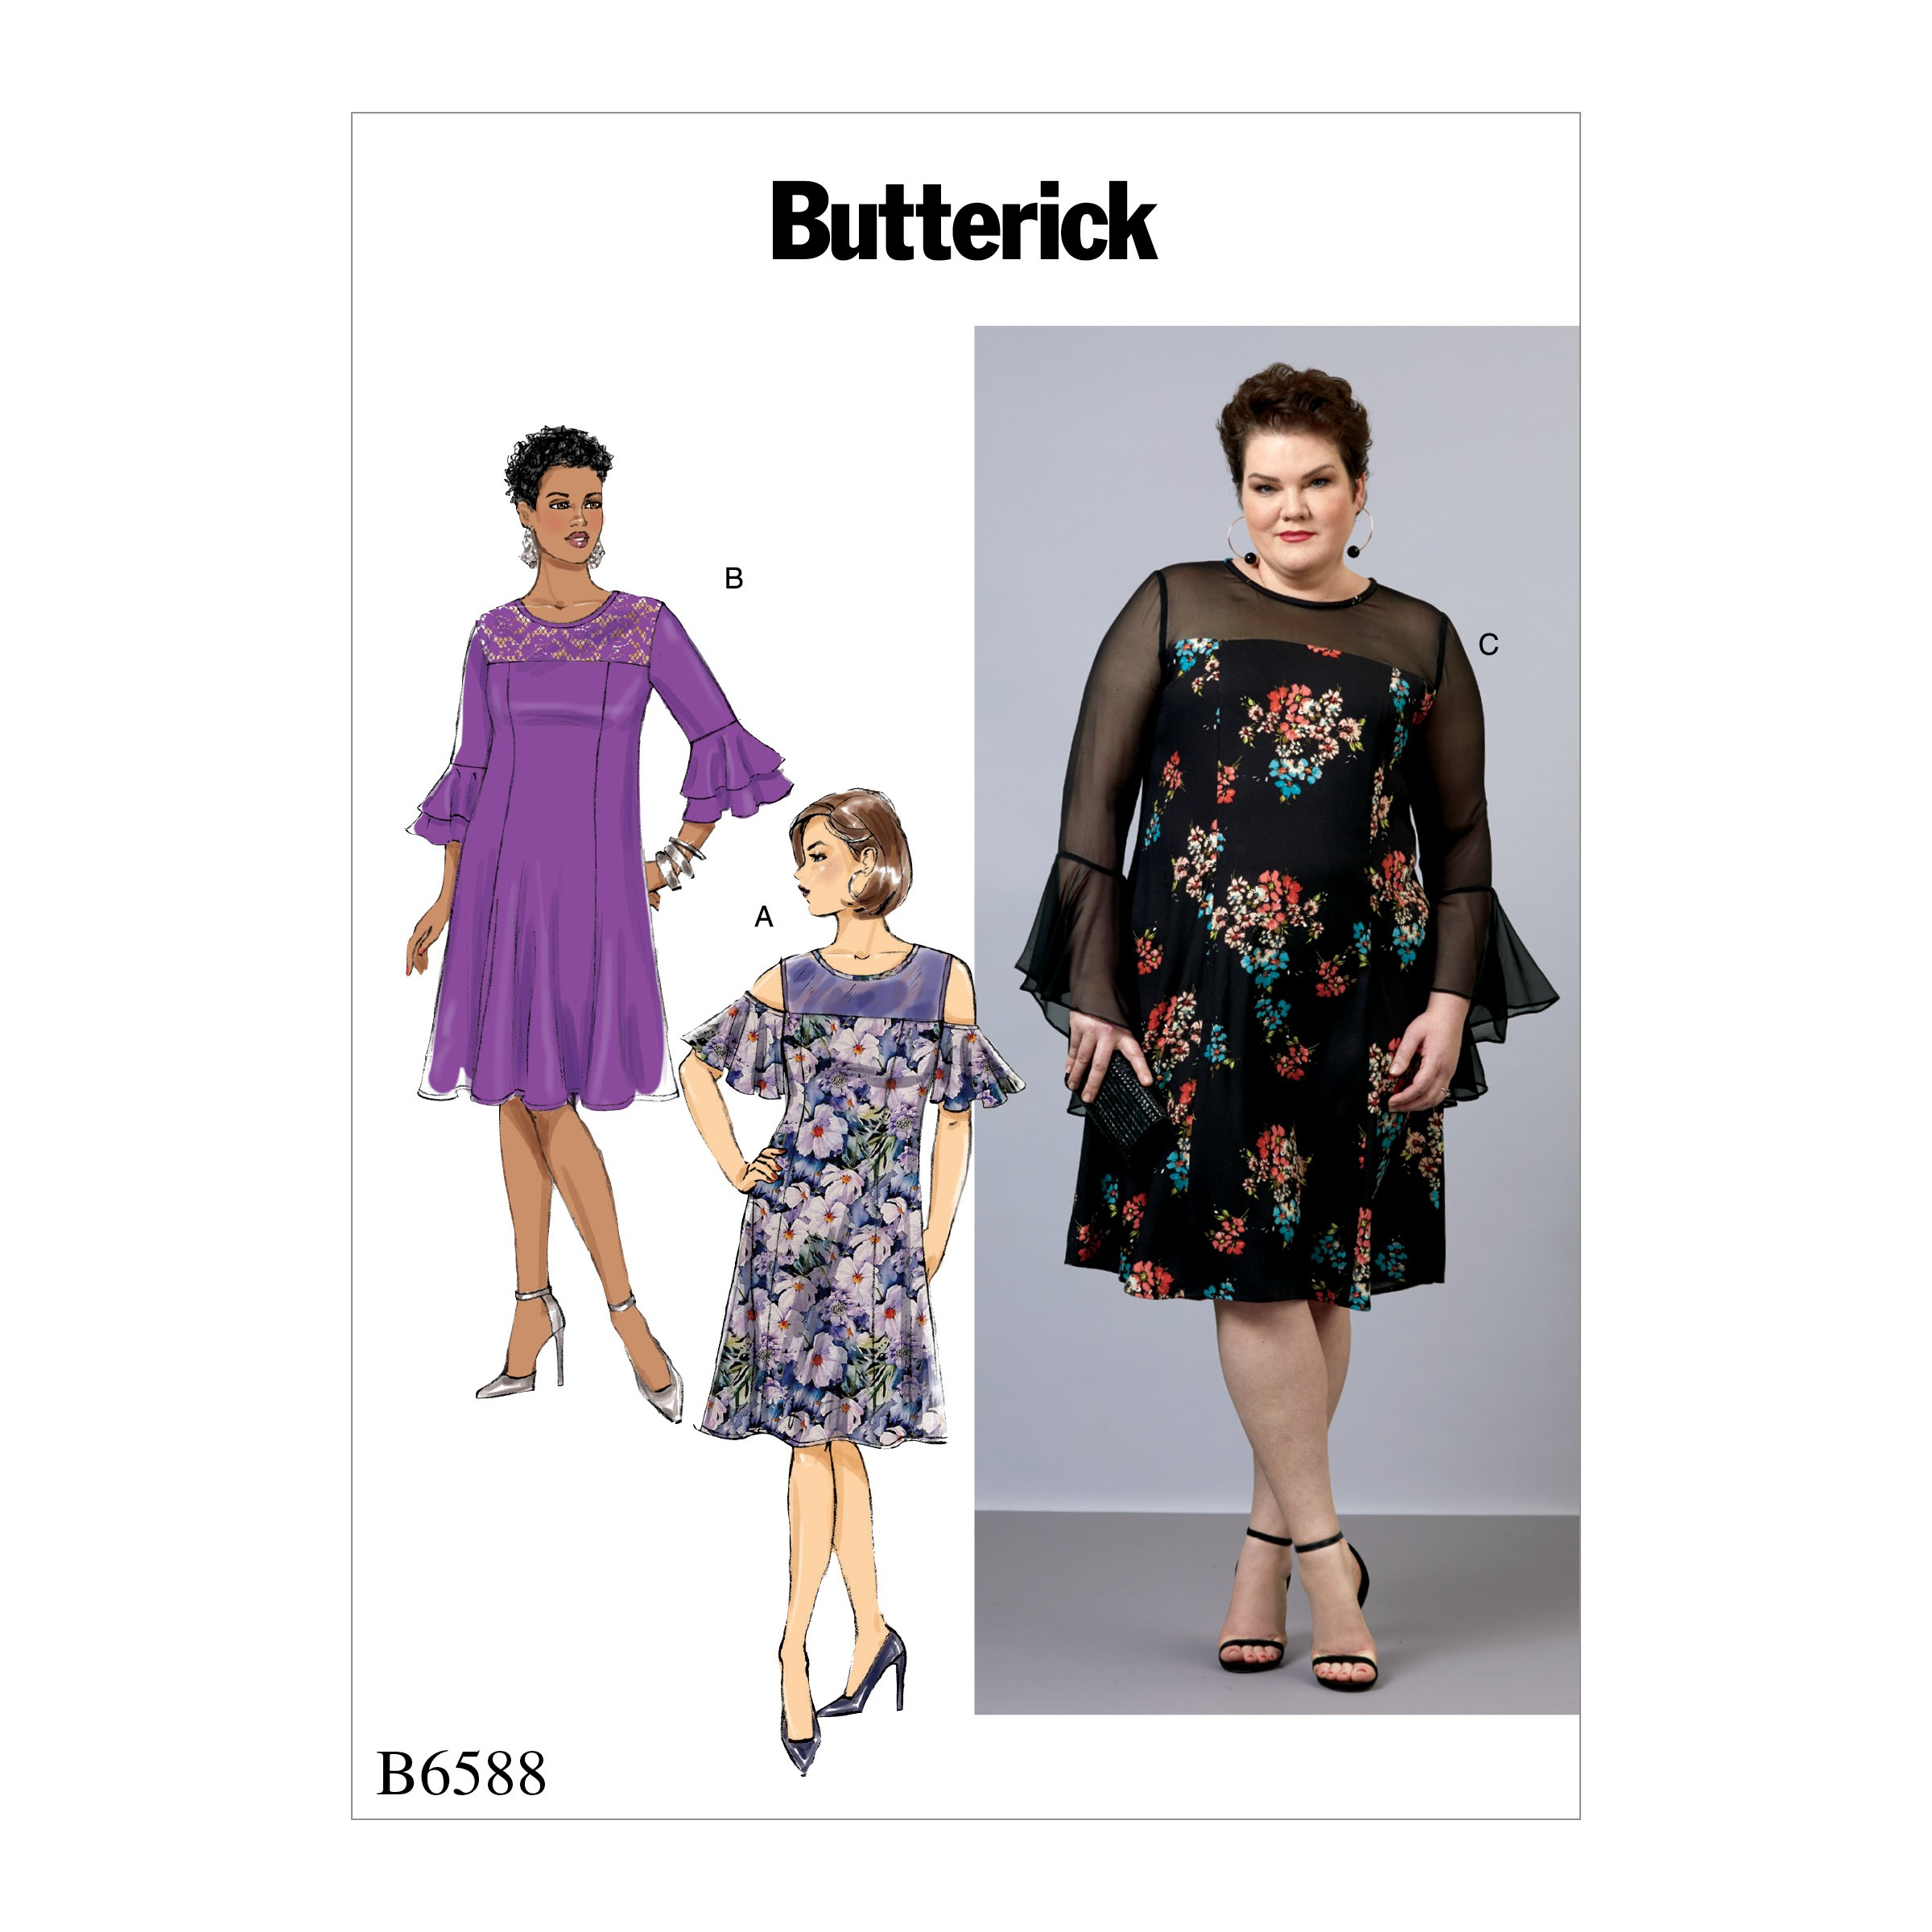 Butterick Sewing Pattern 6588 Misses' Dress with Ruffle Sleeve Options